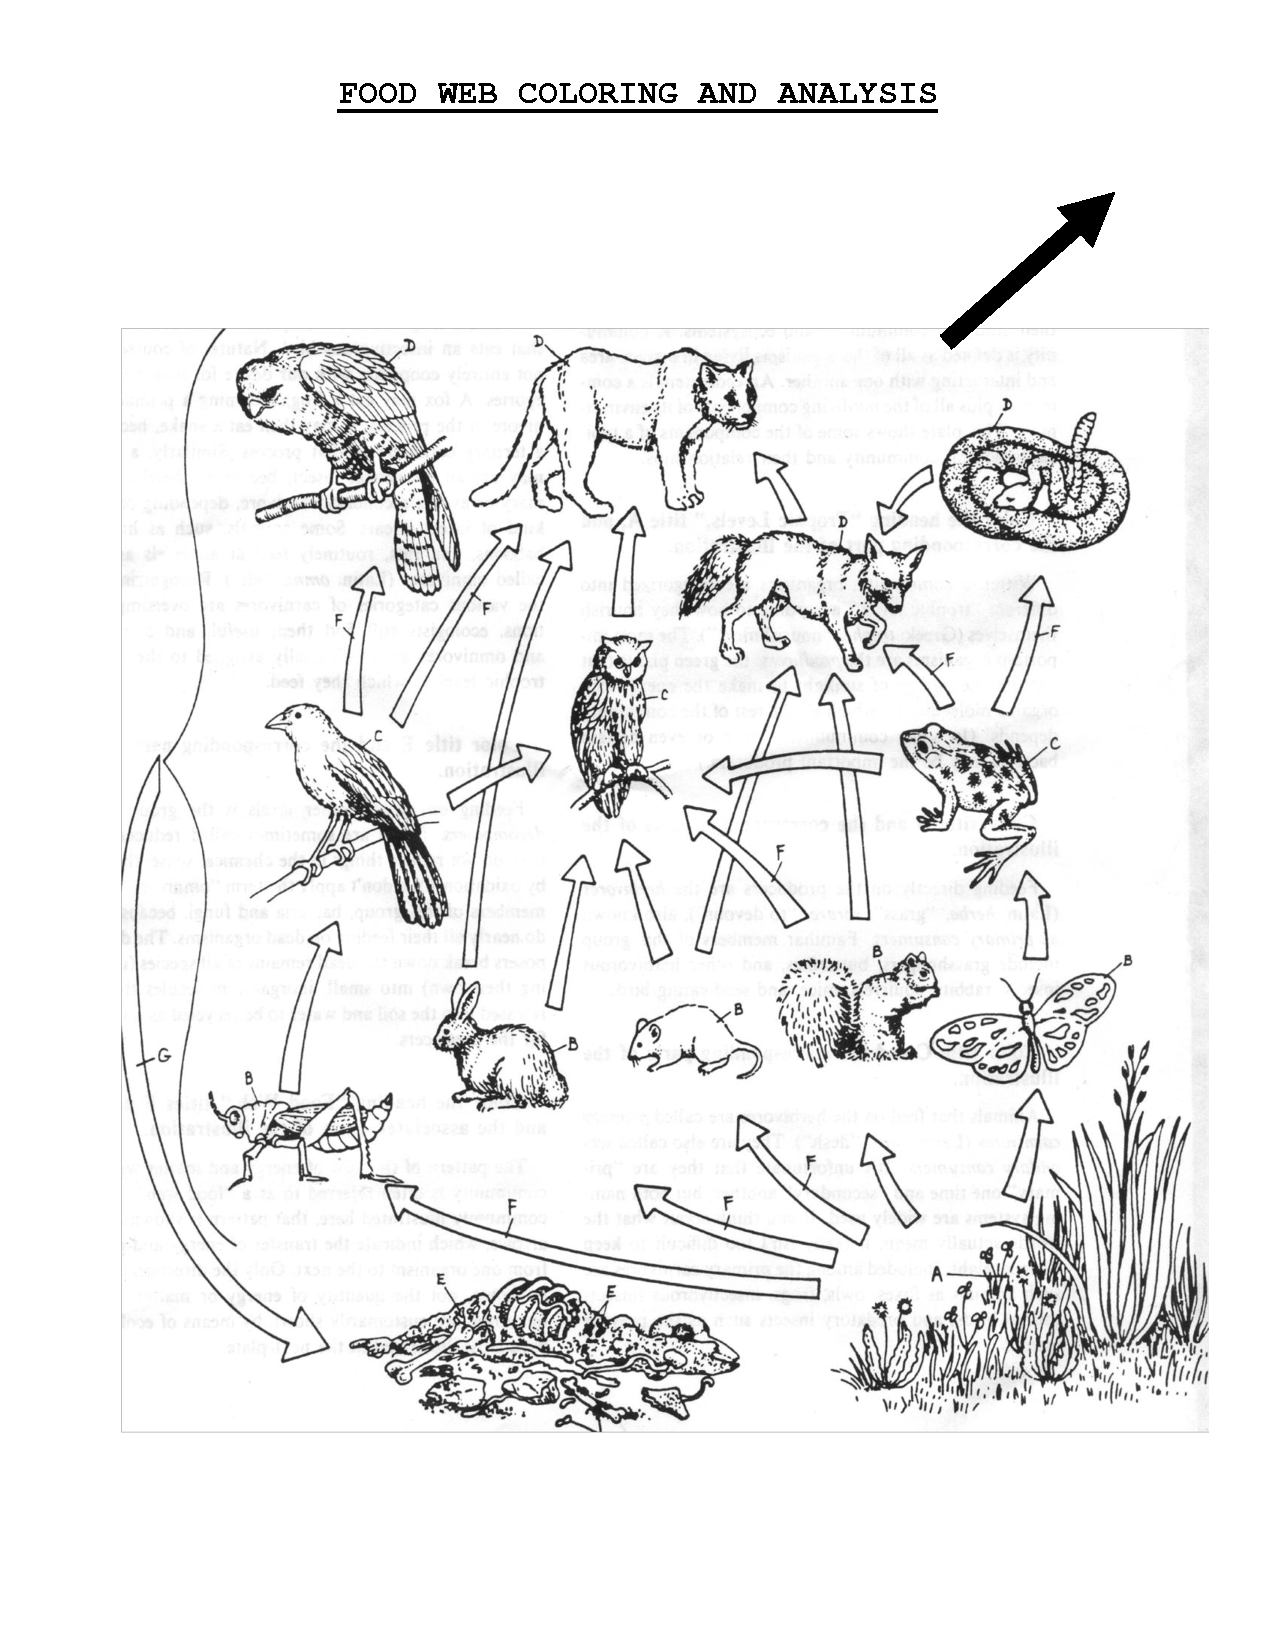 Food web coloring sheet scope